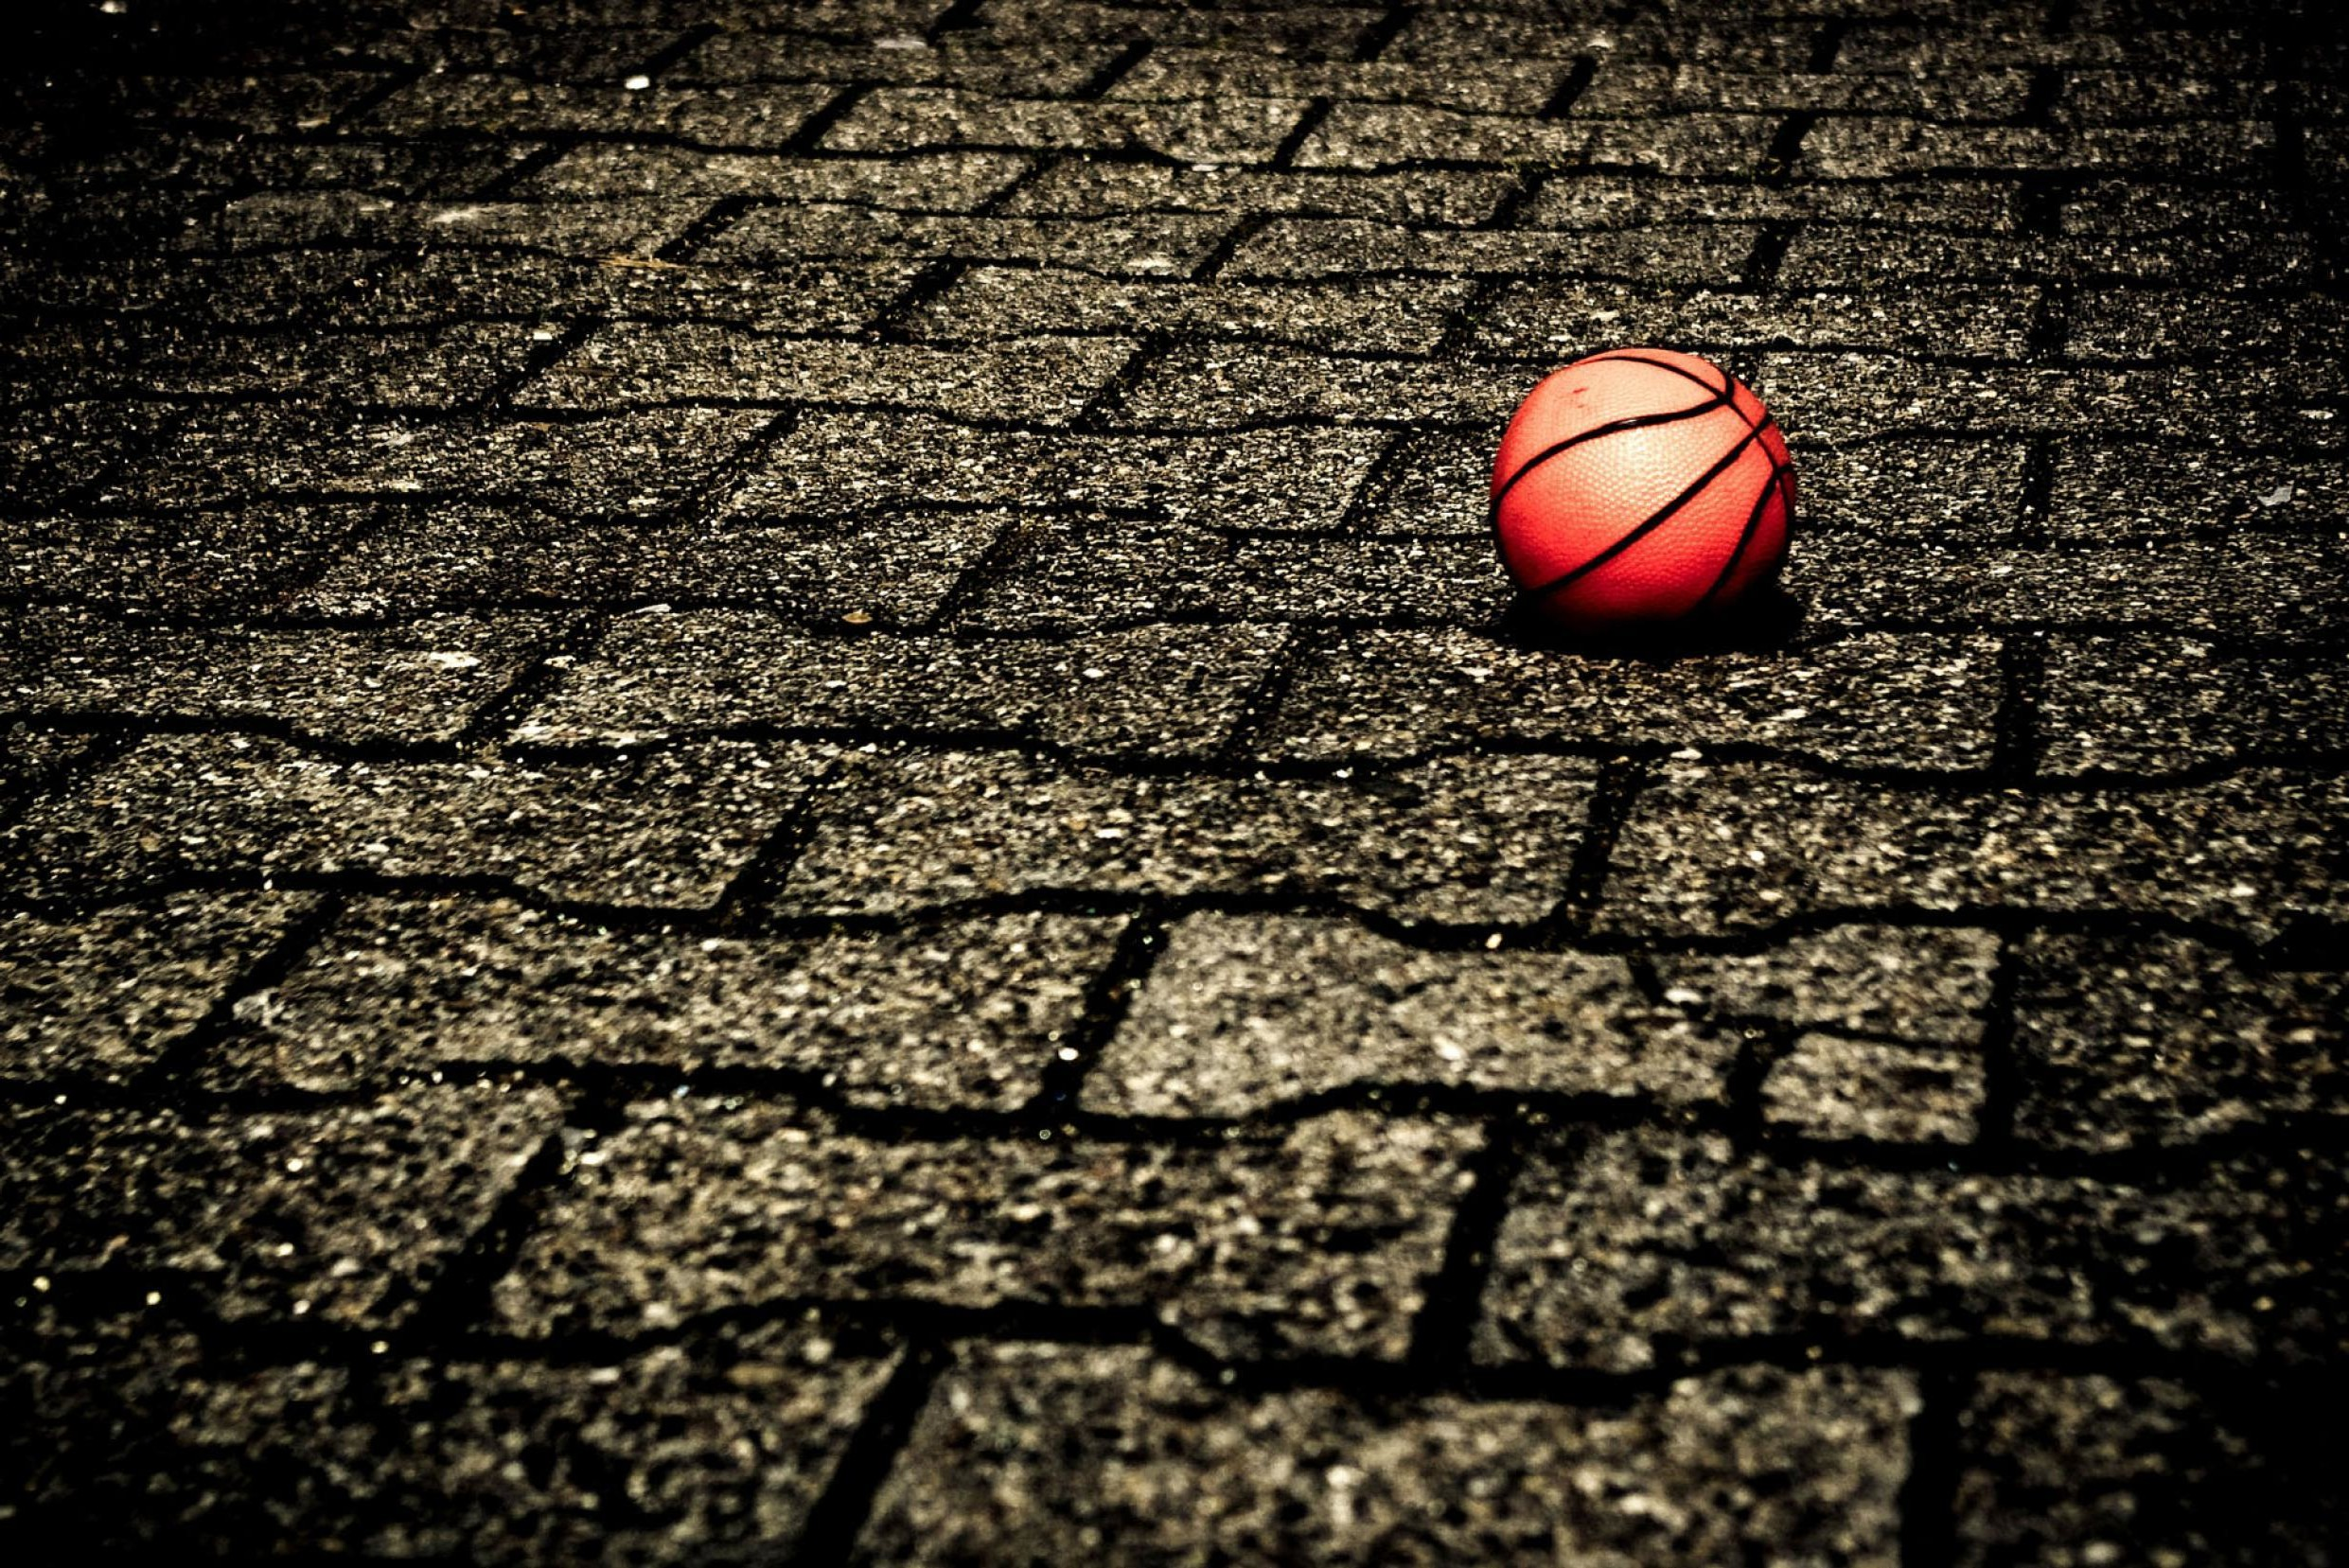 Cool Basketball Wallpapers The Art Mad Wallpapers 2482x1657